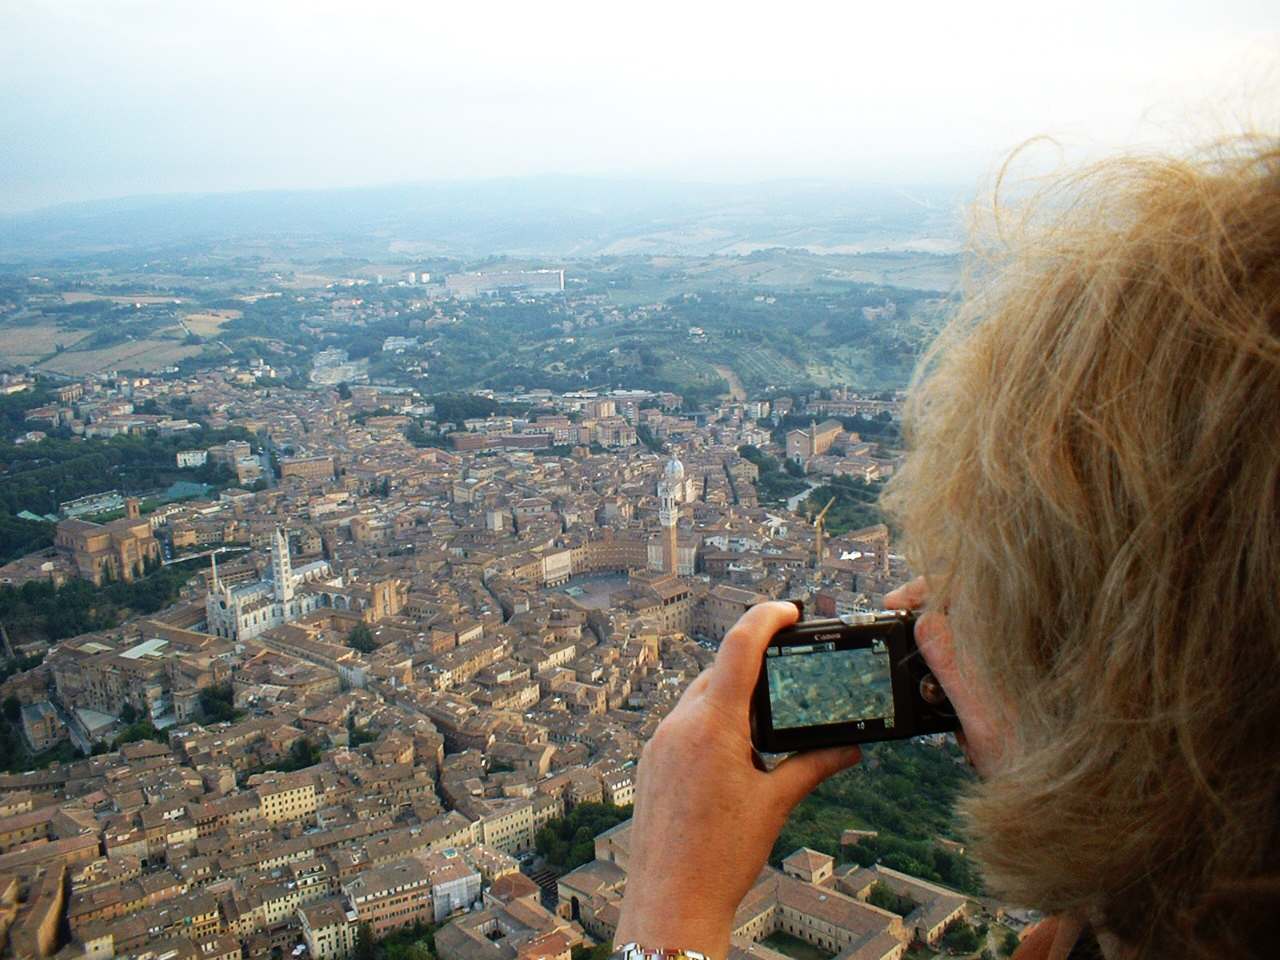 View of Siena from a hot air balloon